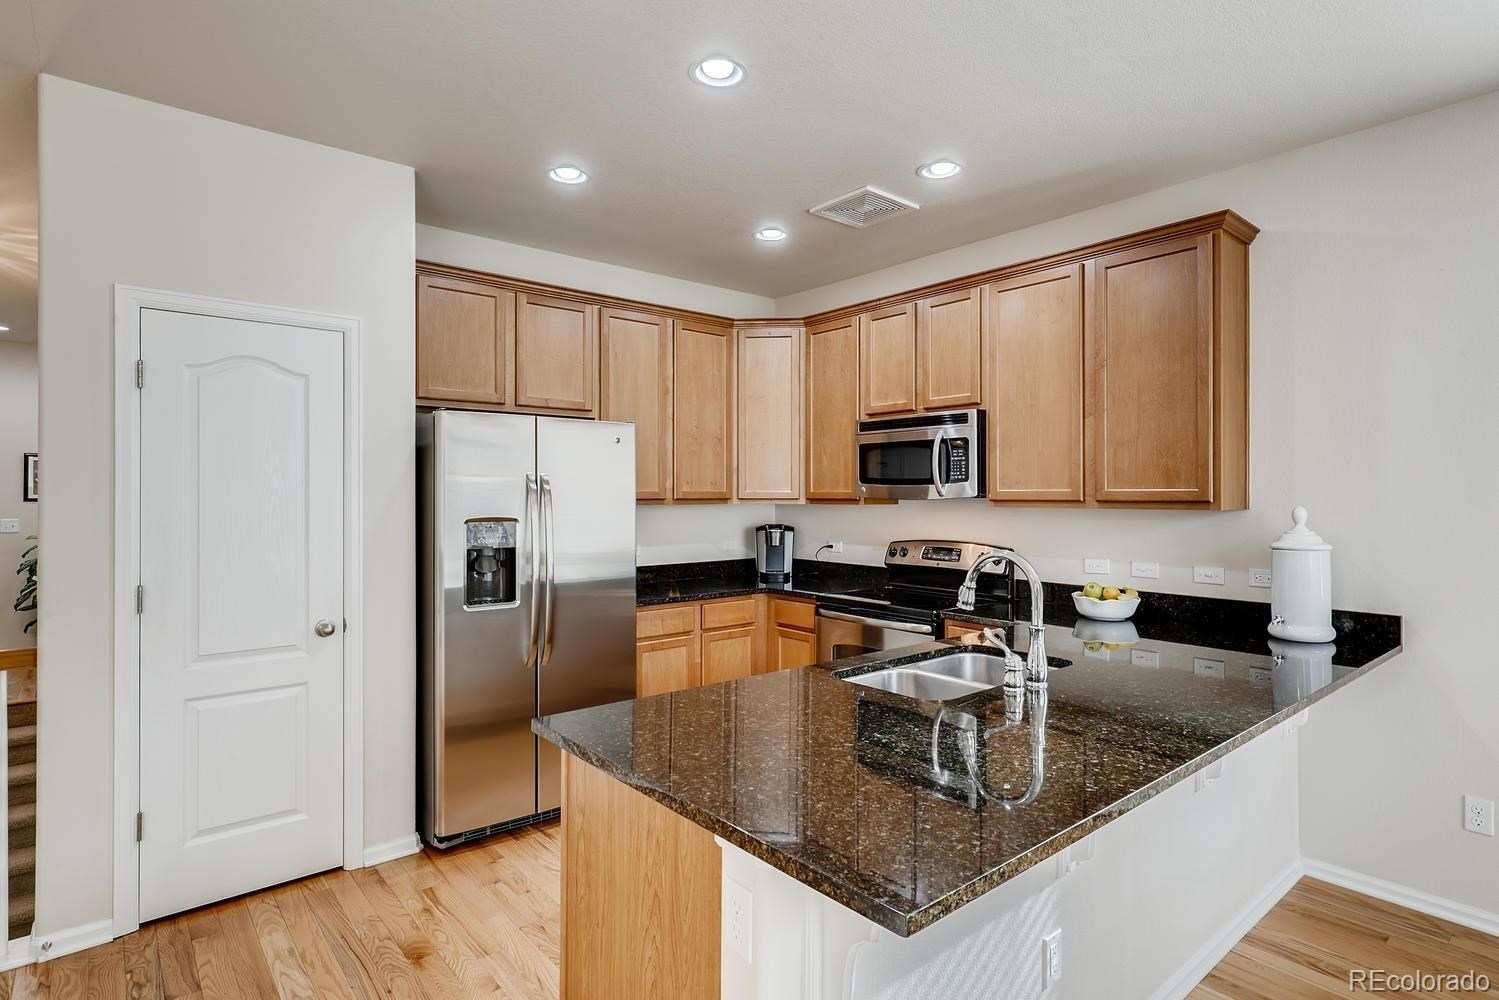 MLS# 8893940 - 12 - 1373 Armstrong Drive, Longmont, CO 80504